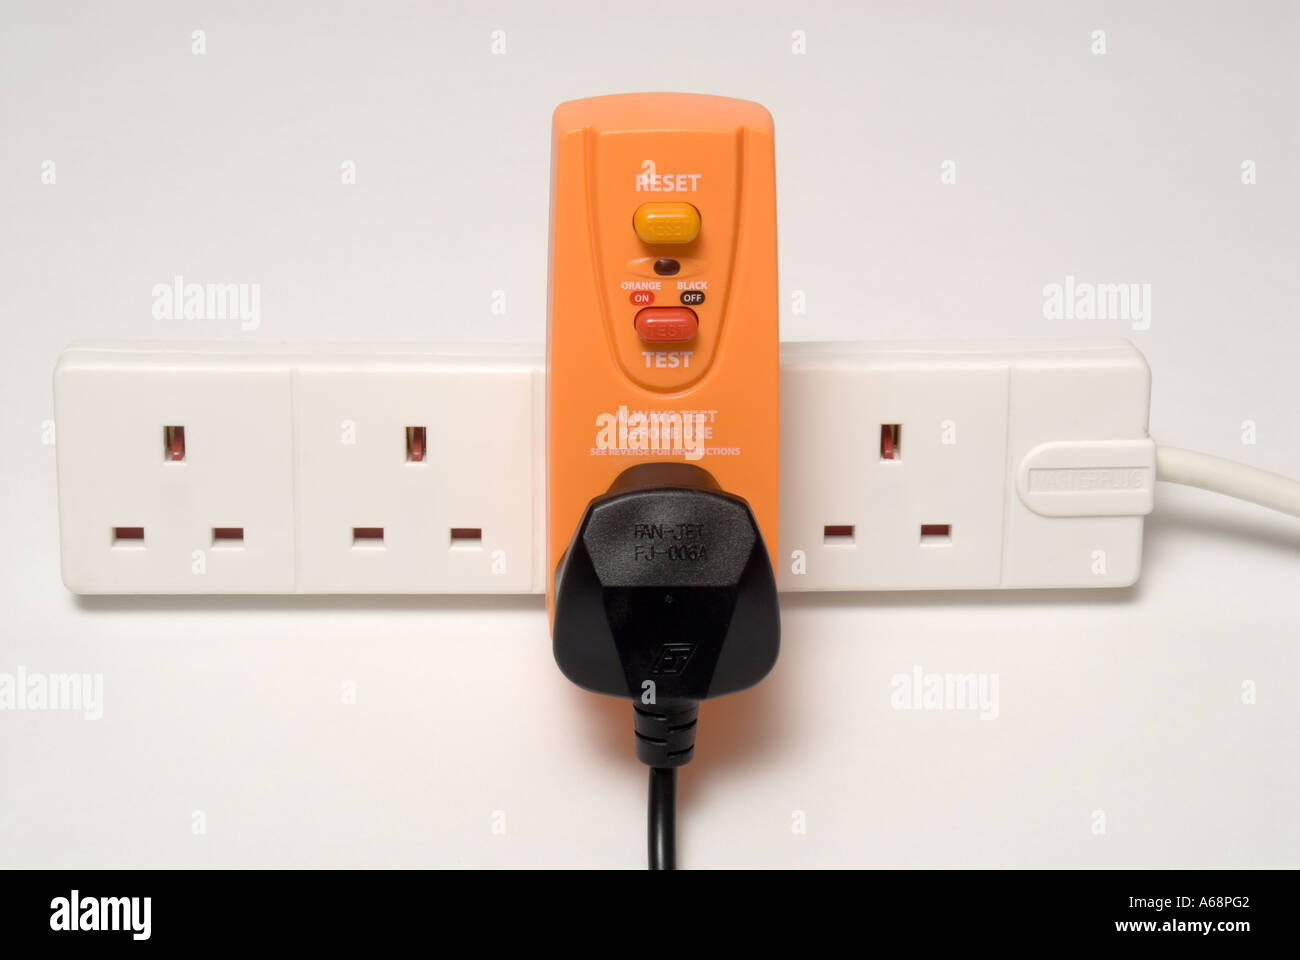 How To Reset Your Gfci Outlets And Circuit Breakers Breaker Plug Stock Photos Rcb Residual Current In Device Help Protect Users From Electrocution Whilst Using